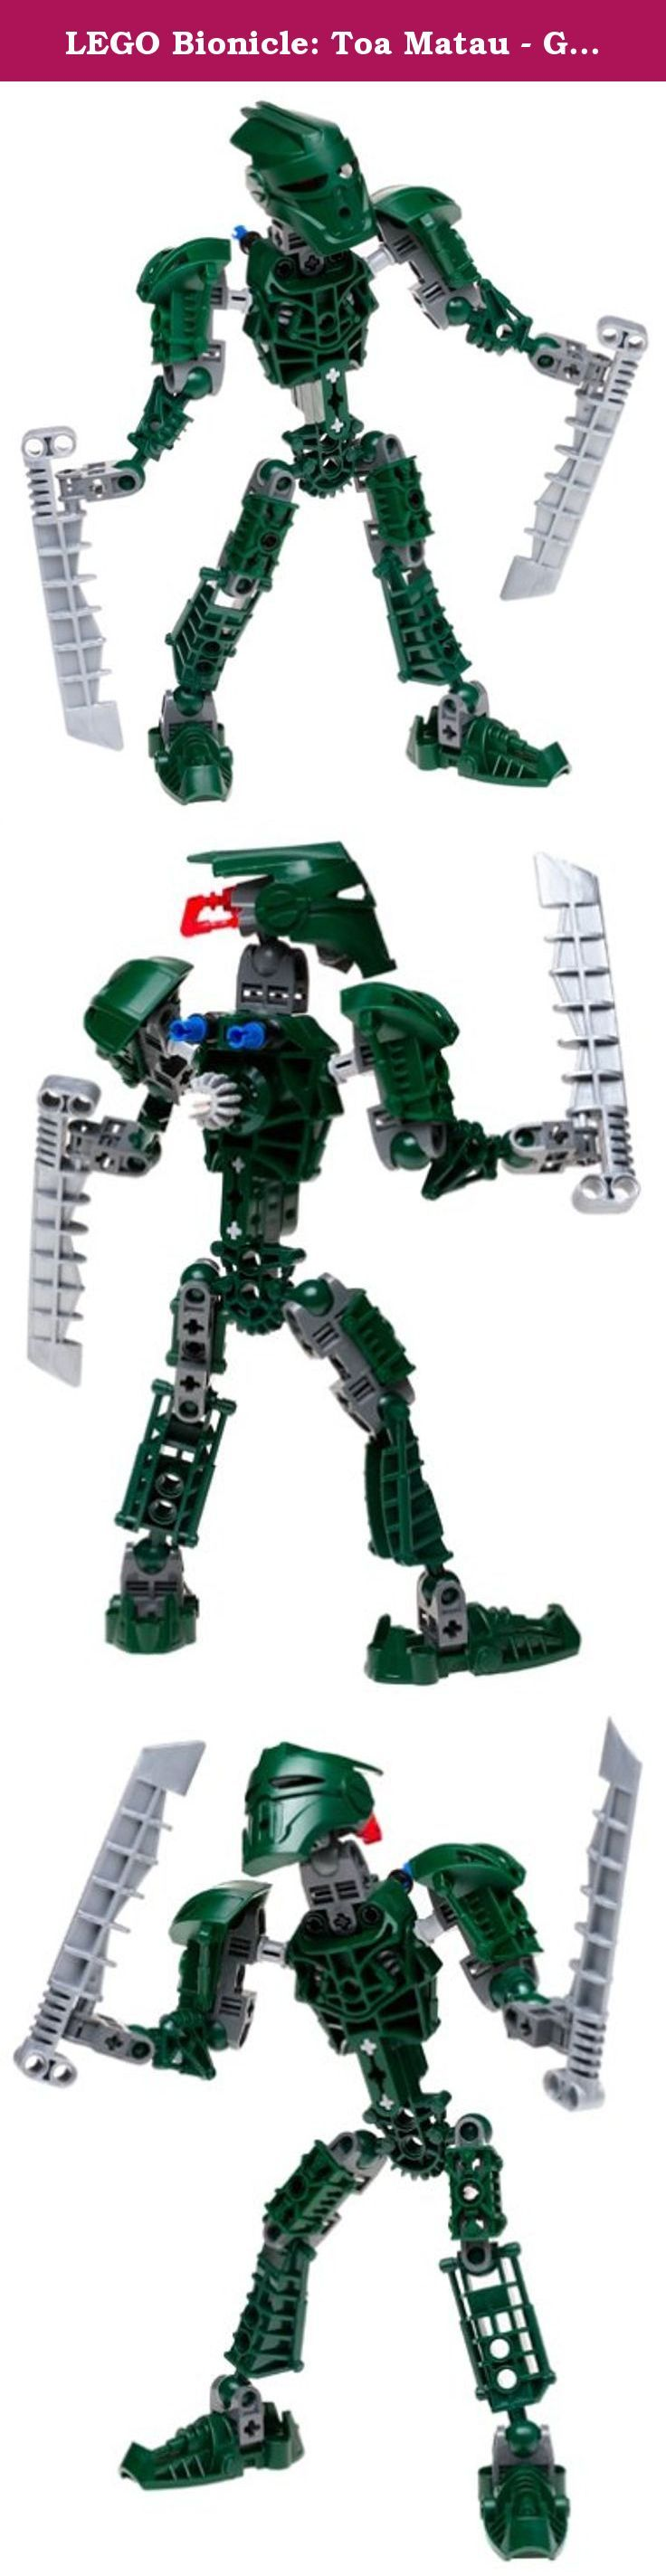 LEGO Bionicle: Toa Matau - Green. Toa Metru of air and guardian of the transport hub of Le-Metru, Matau is known for his instincts and his sense of humor. His Great Mask of Illusion and twin aero slicers make him a hero to be reckoned with. Includes 46 LEGO pieces. Look inside for a special Kanoka card with a BIONICLE Instant Win game! Then, enter the card's Kanoka code on BIONICLE.com to access secret BIONICLE information.